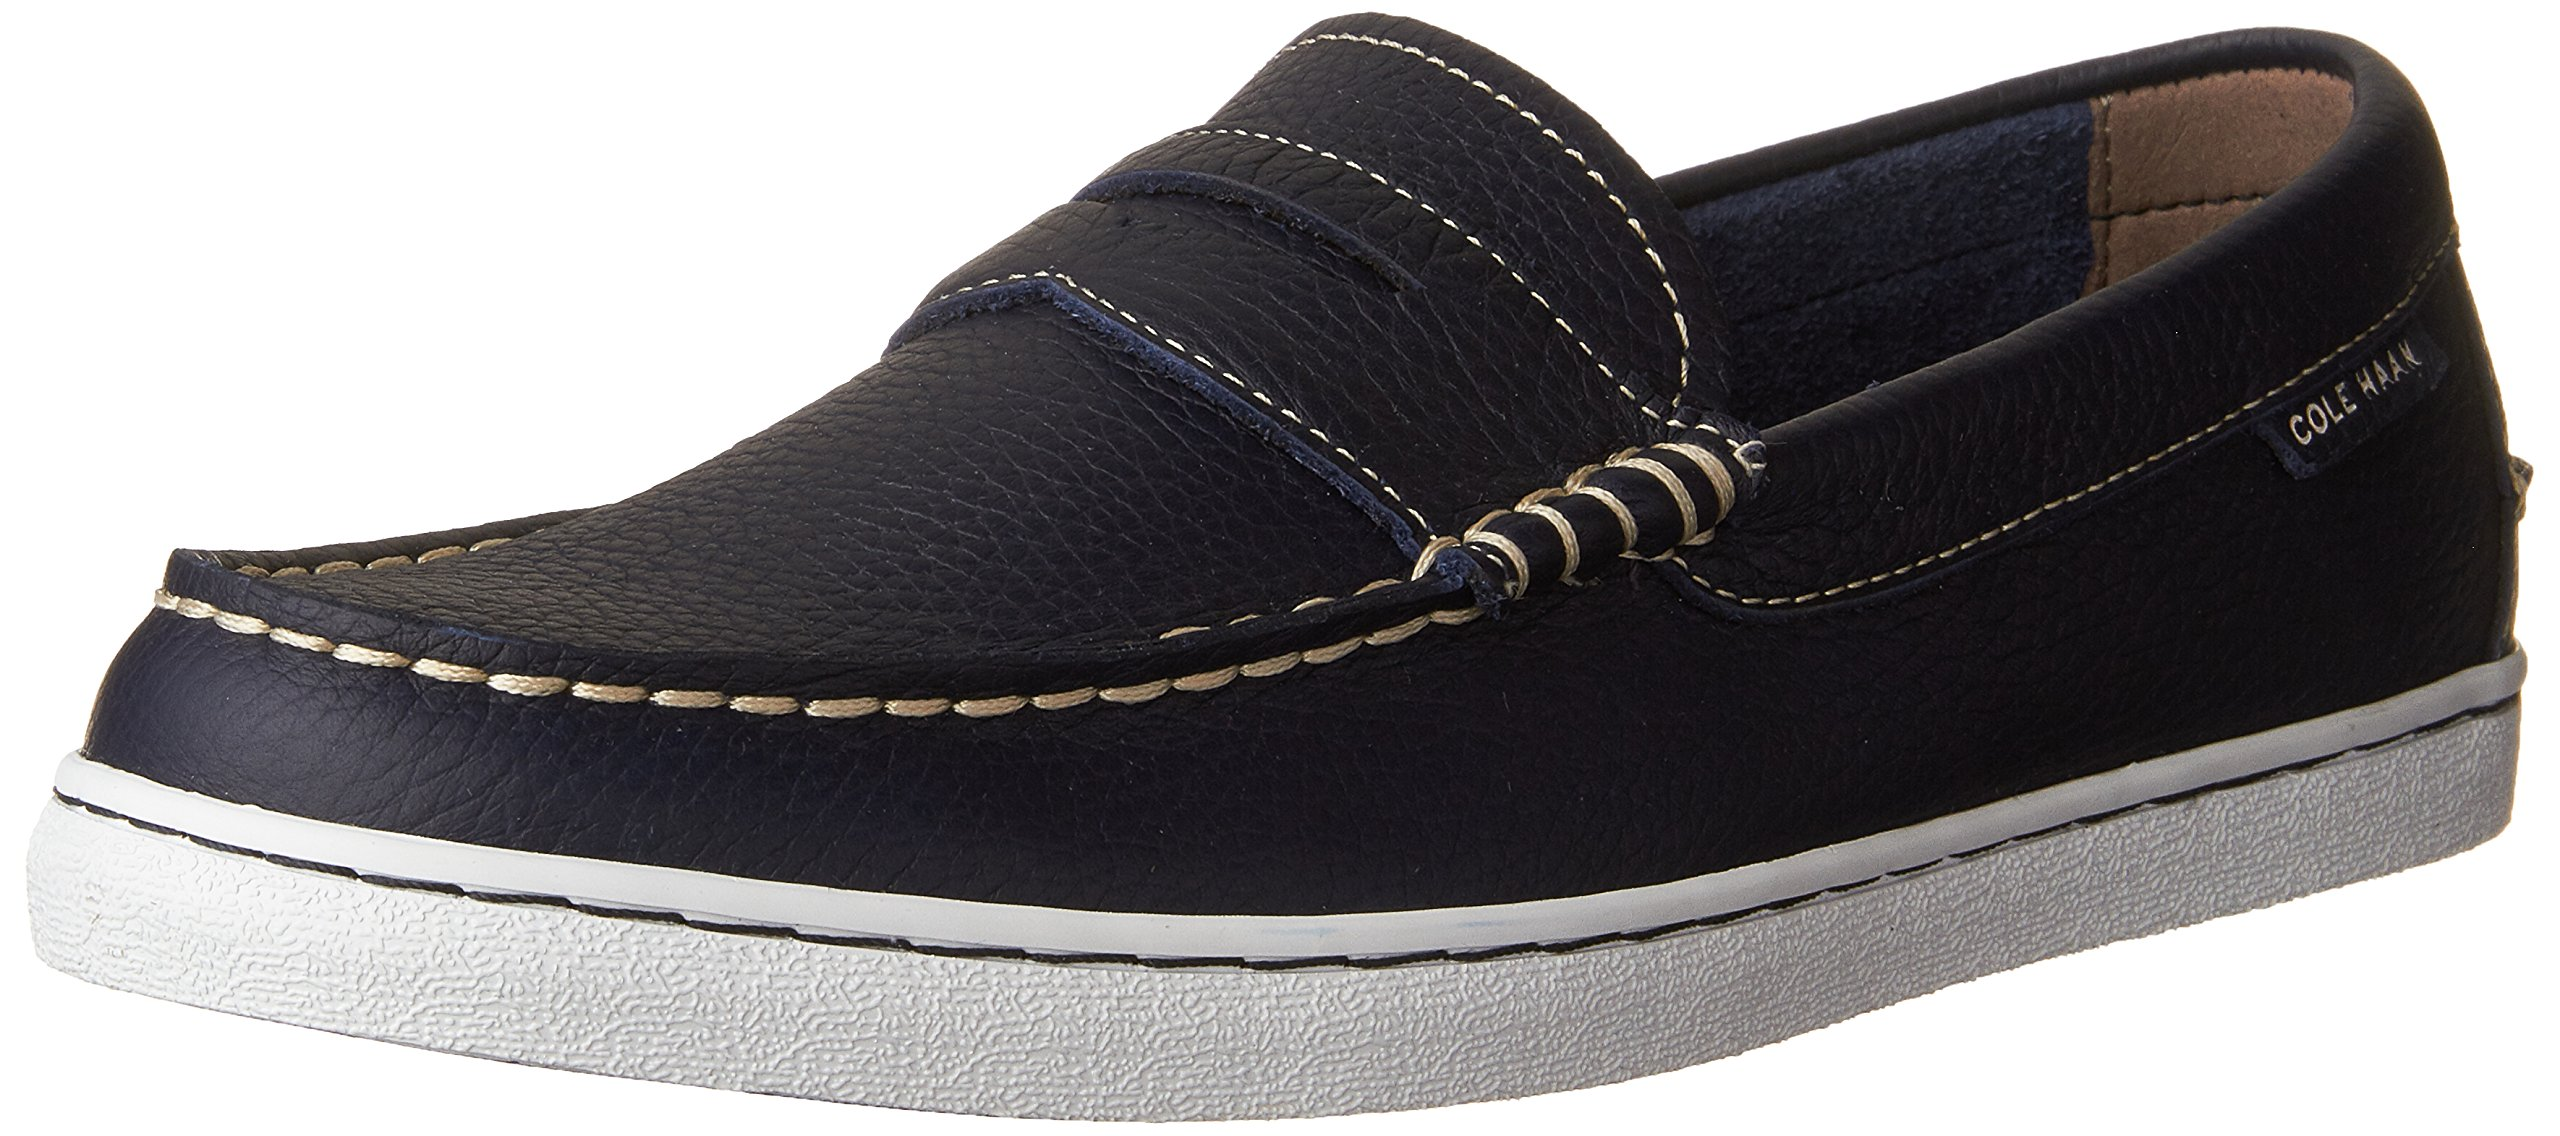 Cole Haan Men's Pinch Weekender Penny Loafer, Peacoat Leather/White, 8 M US